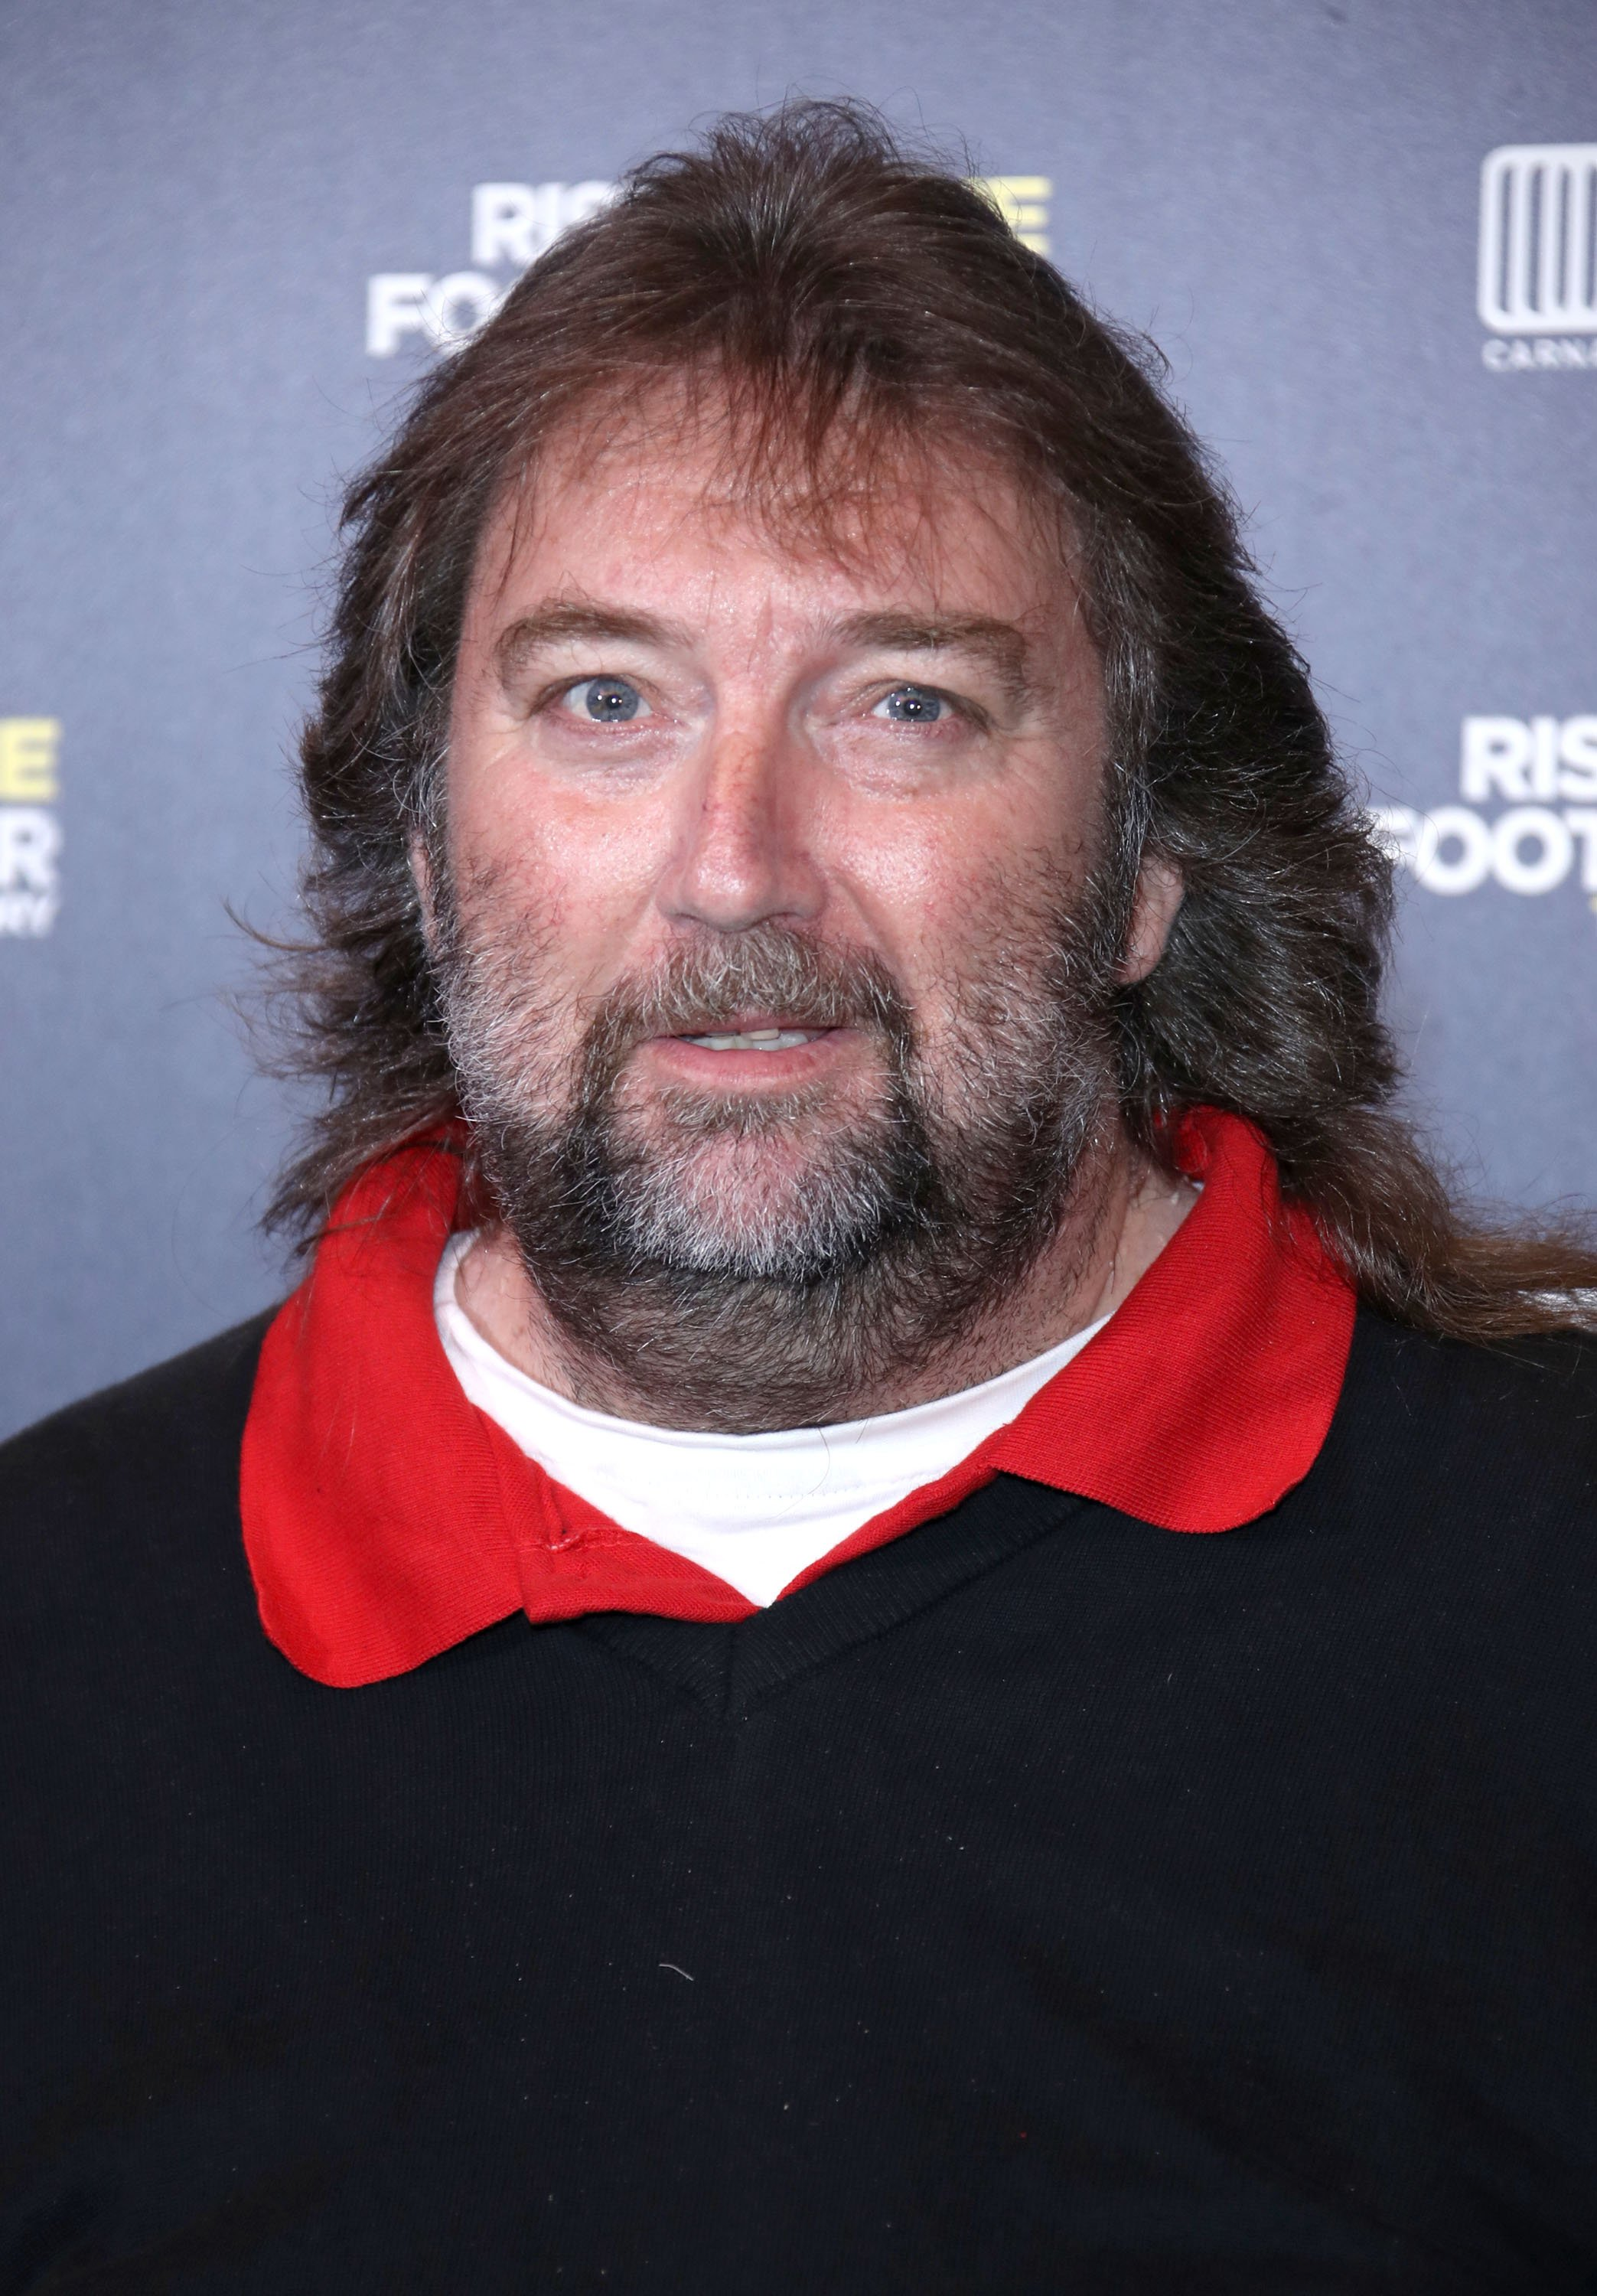 Andy Fordham arriving at the UK Premiere of 'Rise of the Footsoldier 3: The Pat Tate Story' at Cineworld Leicester Square on October 26, 2017 in London, England.   Source: Getty Images